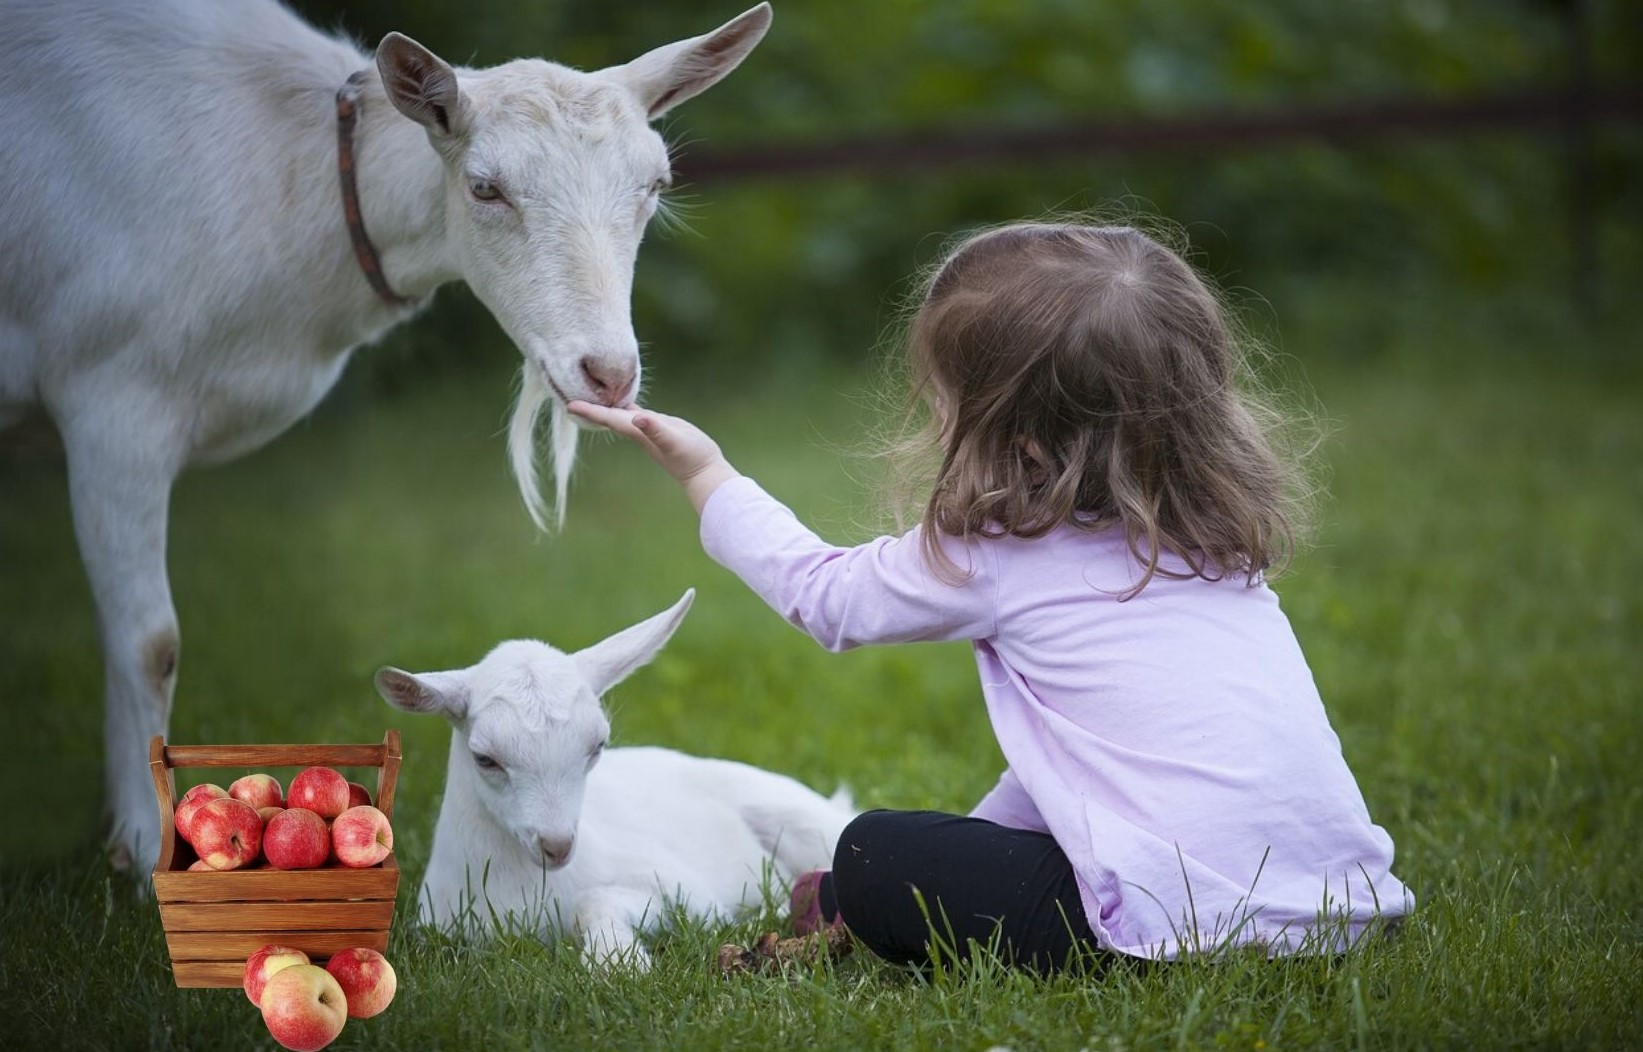 Can Goats Eat Apples